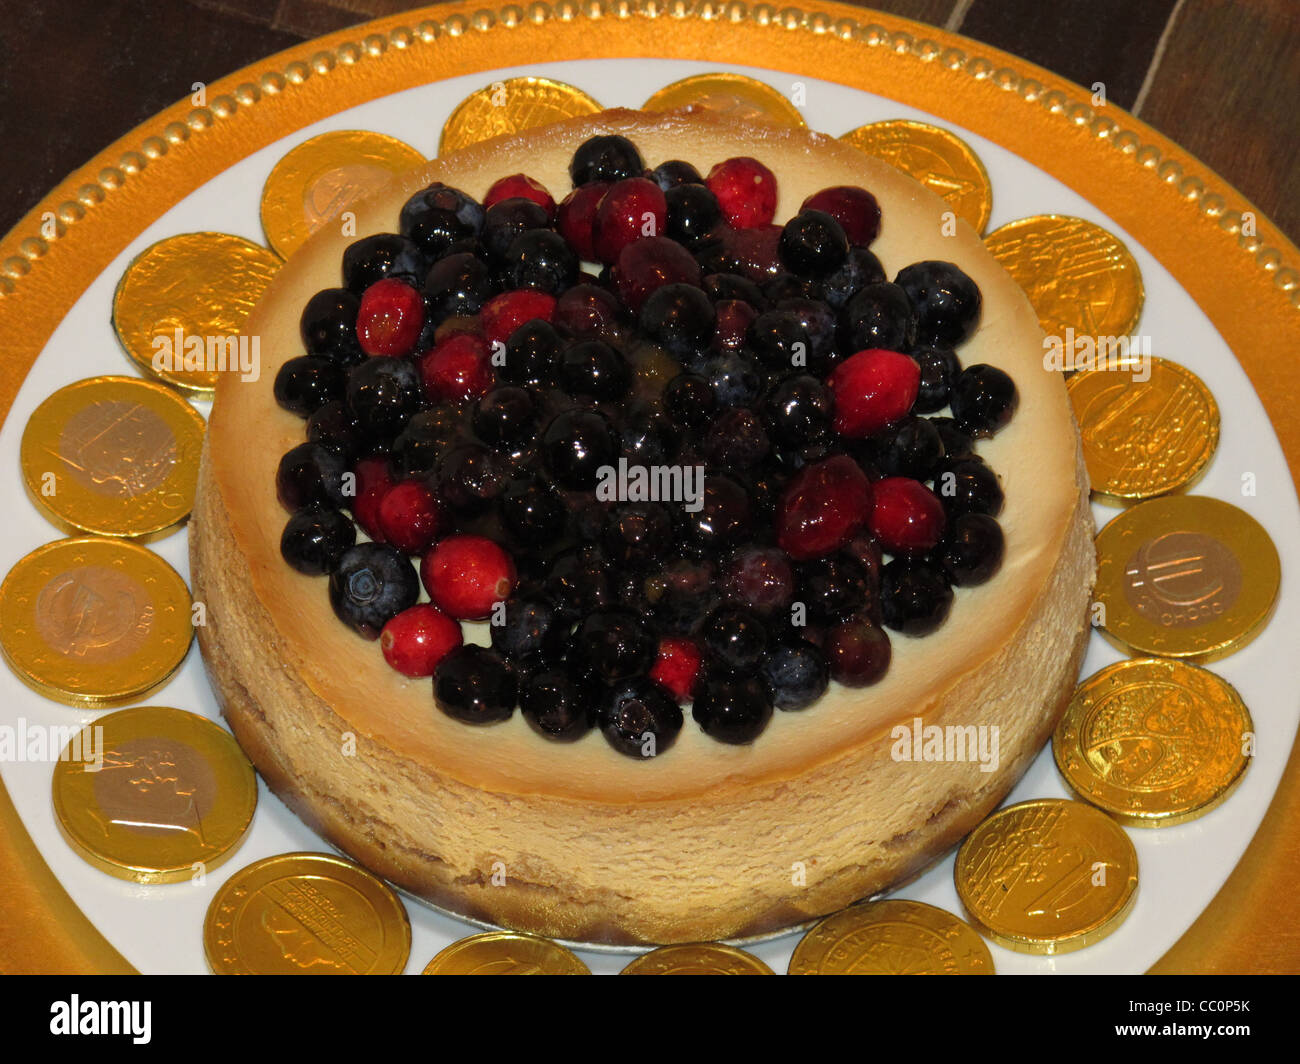 Cheesecake with cranberries and blueberries on top, circled with chocolate gold coins of Euros. - Stock Image